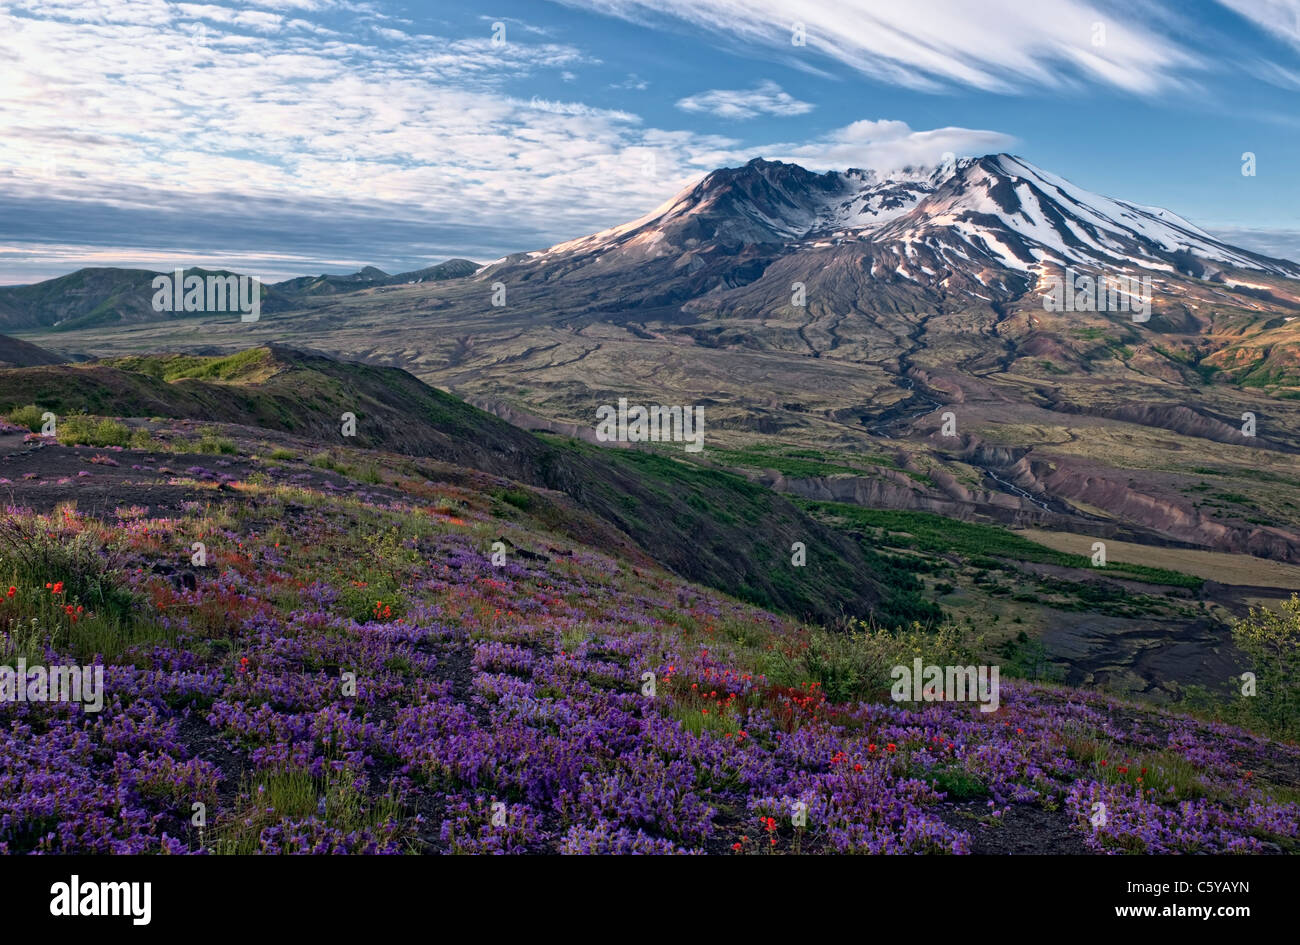 First light streams across the wildflowers along Johnston Ridge overlooking Washington's Mount St Helens NatVolcanic - Stock Image